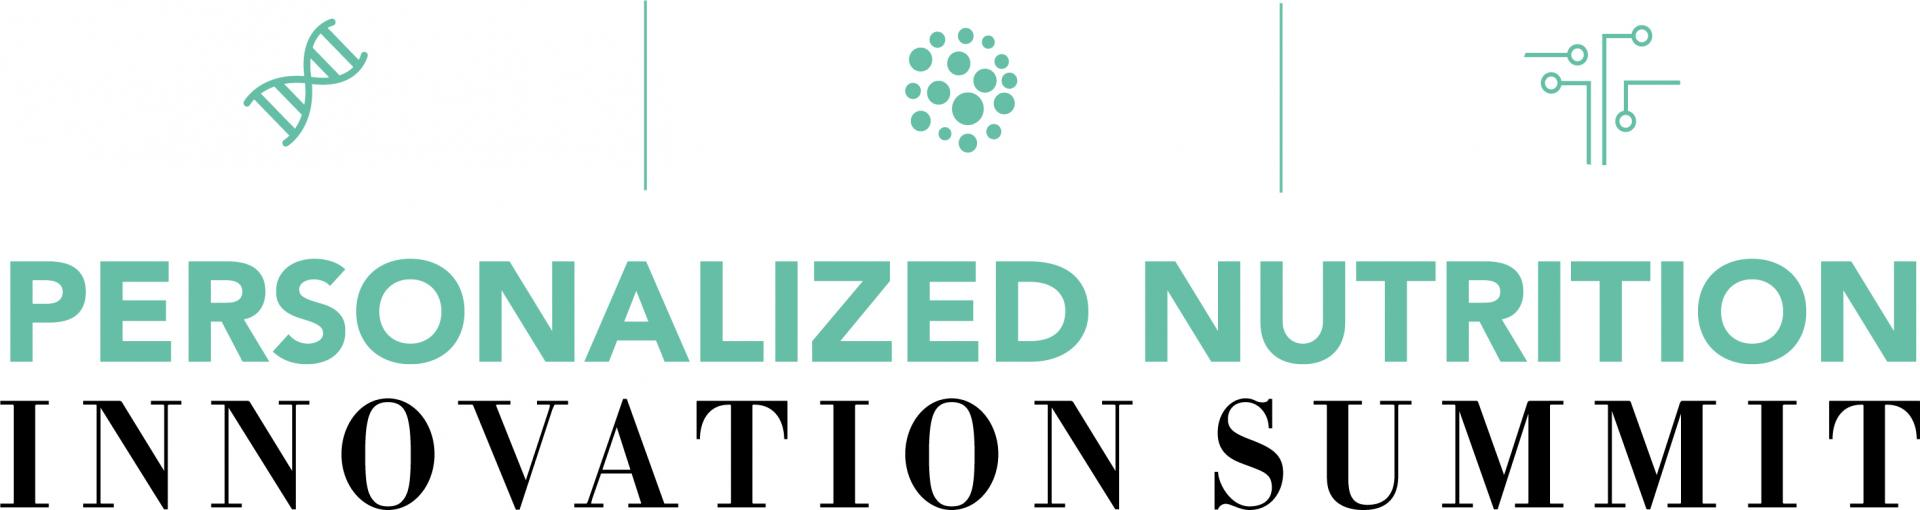 Personalized Nutrition 2019